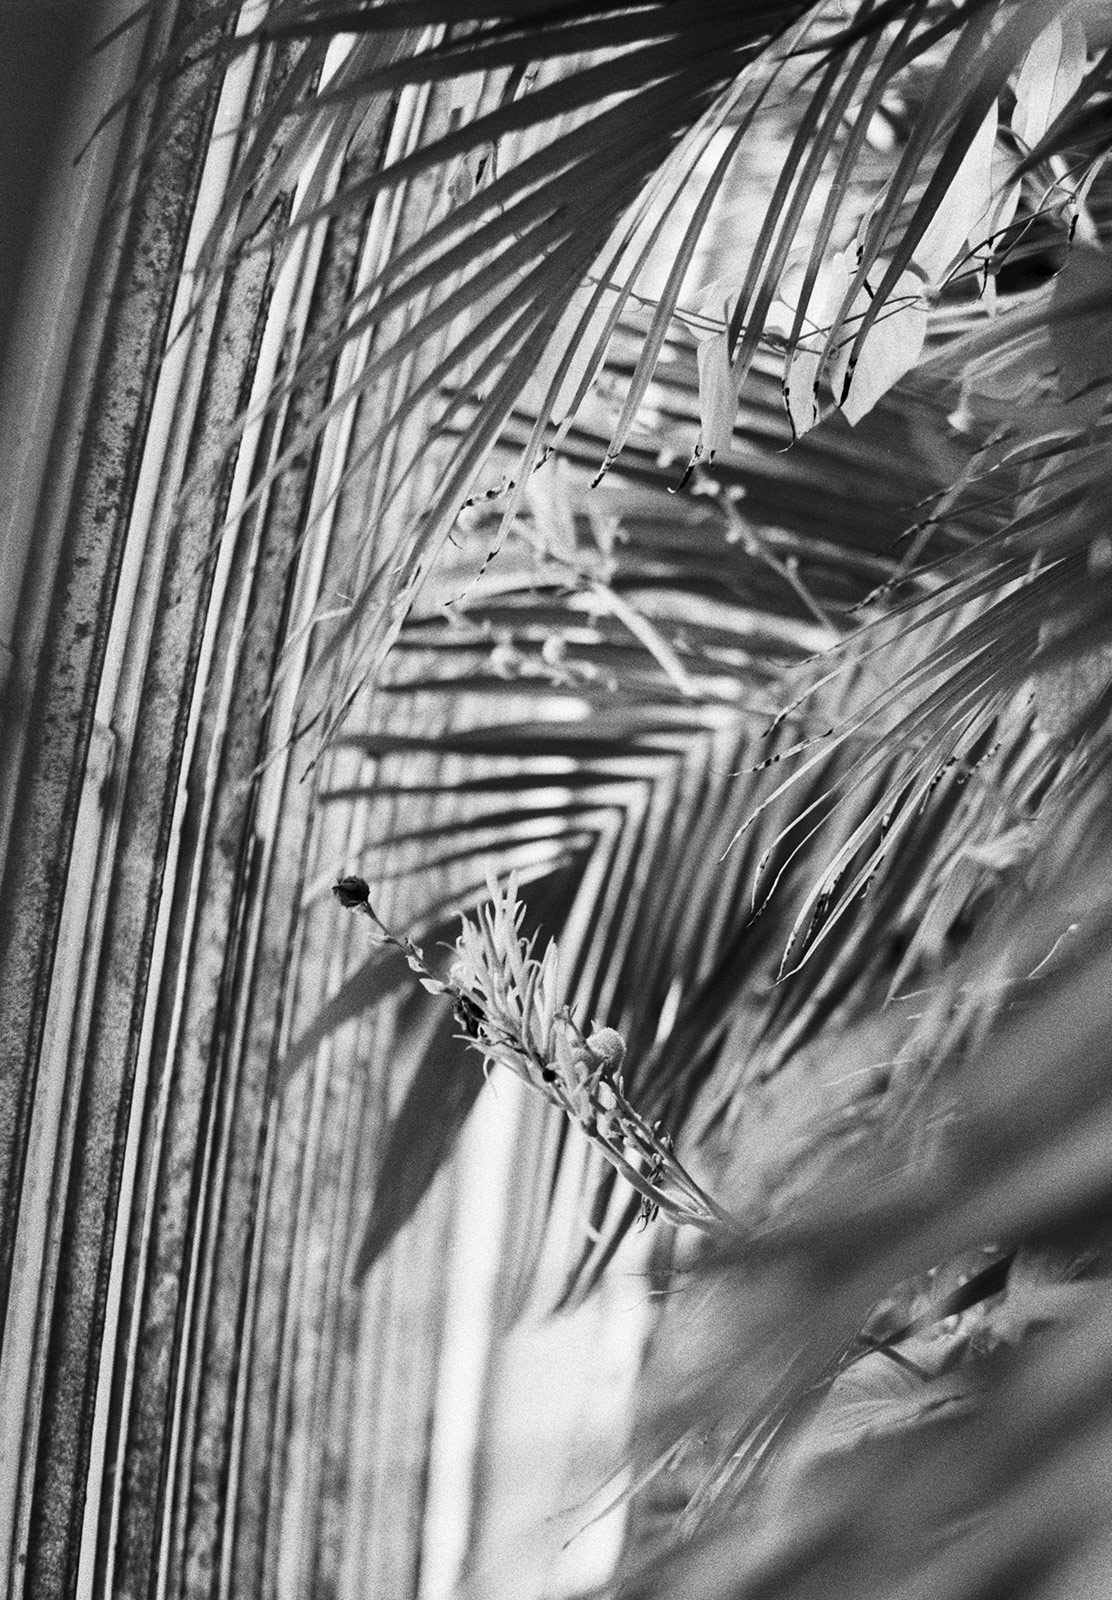 Layers of palm leaves